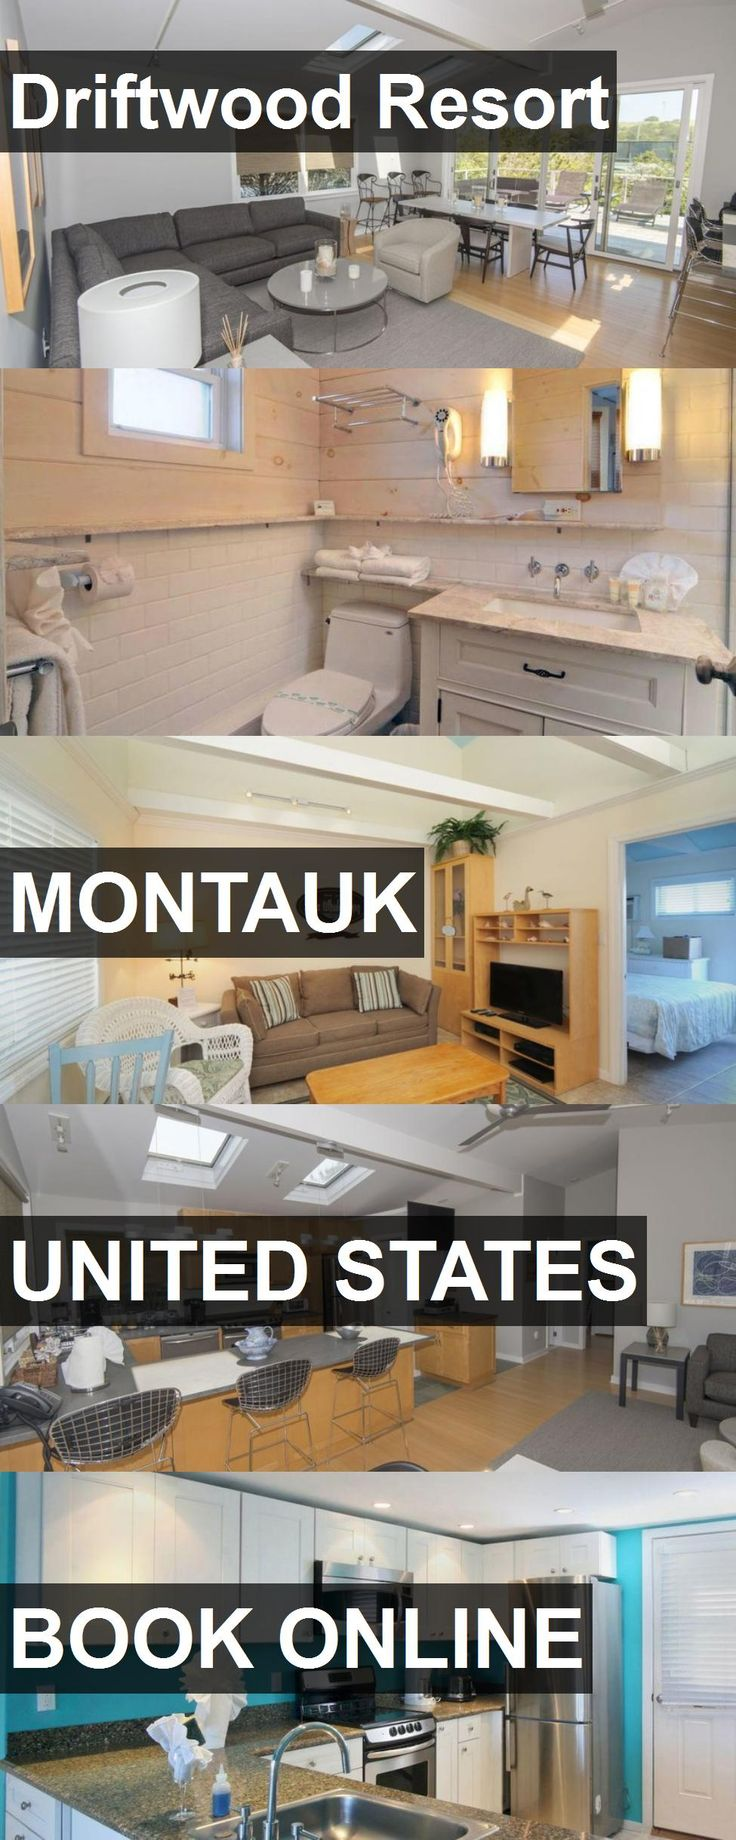 Hotel Driftwood Resort in Montauk, United States. For more information, photos, reviews and best prices please follow the link. #UnitedStates #Montauk #travel #vacation #hotel